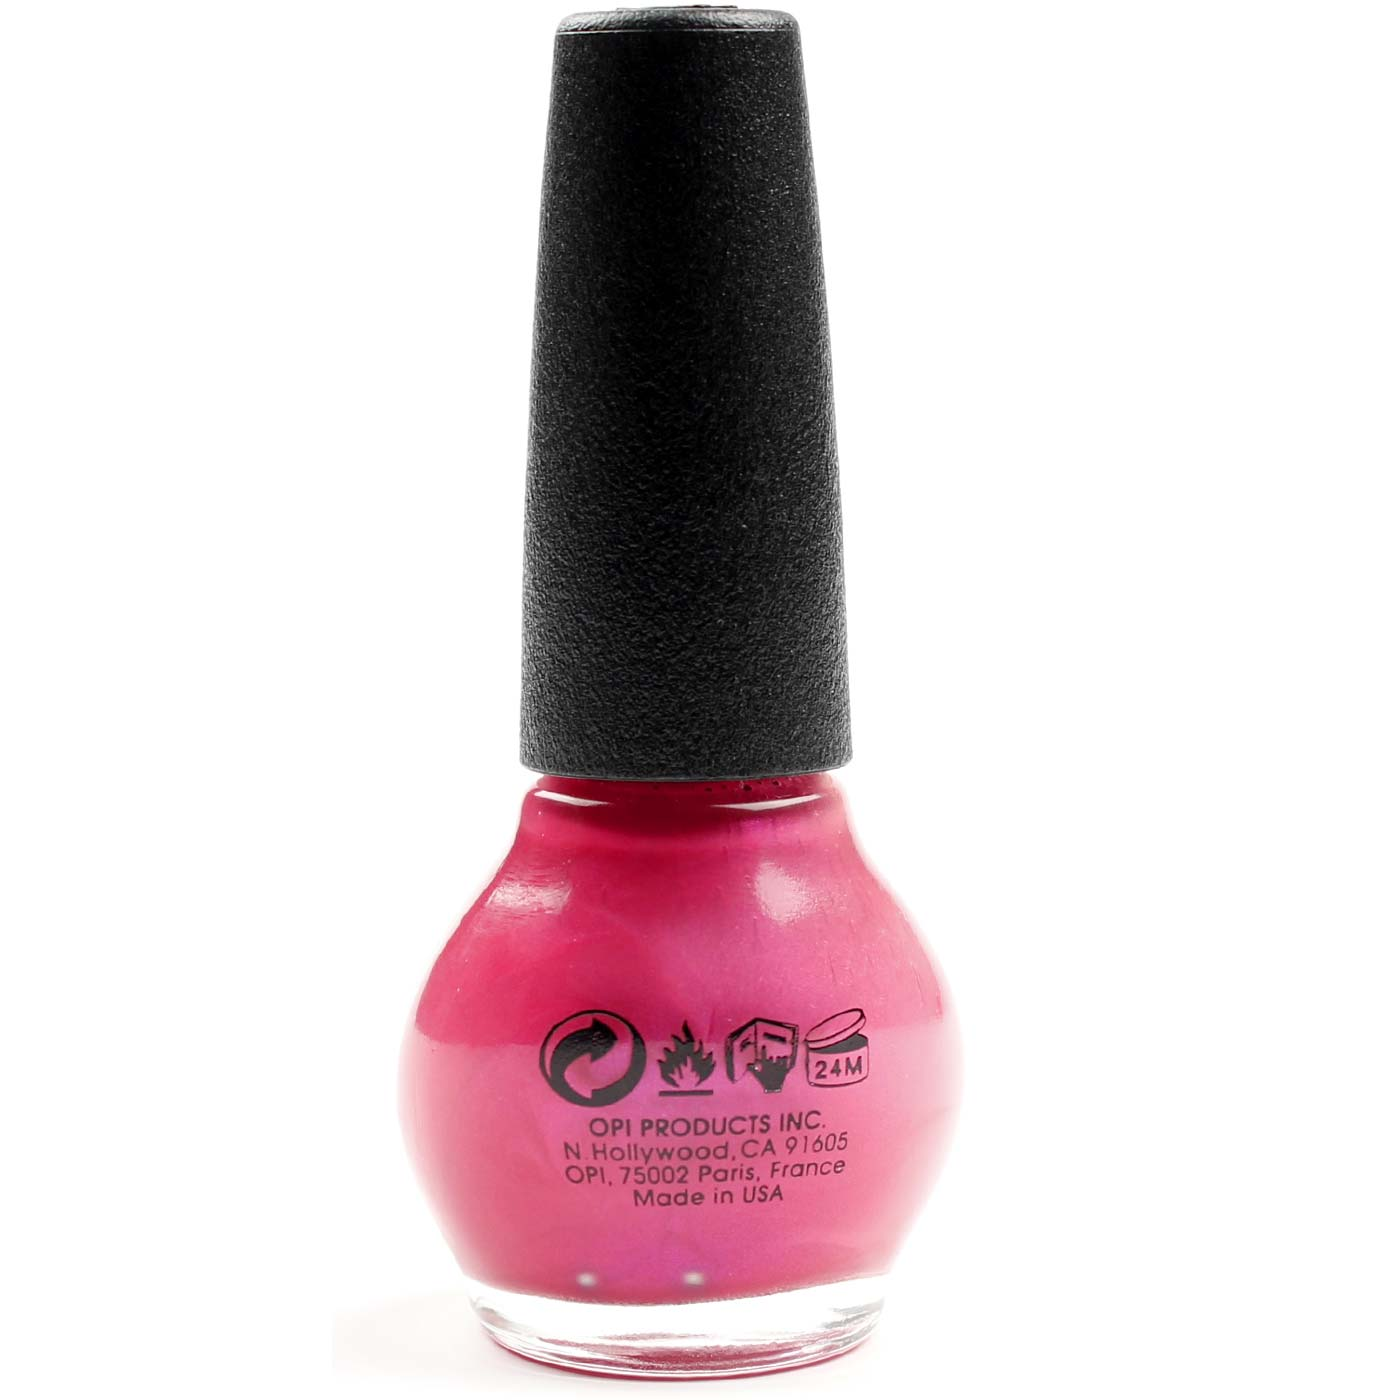 Nicole By OPI Nail Polish, Pink - Believe It, Do It